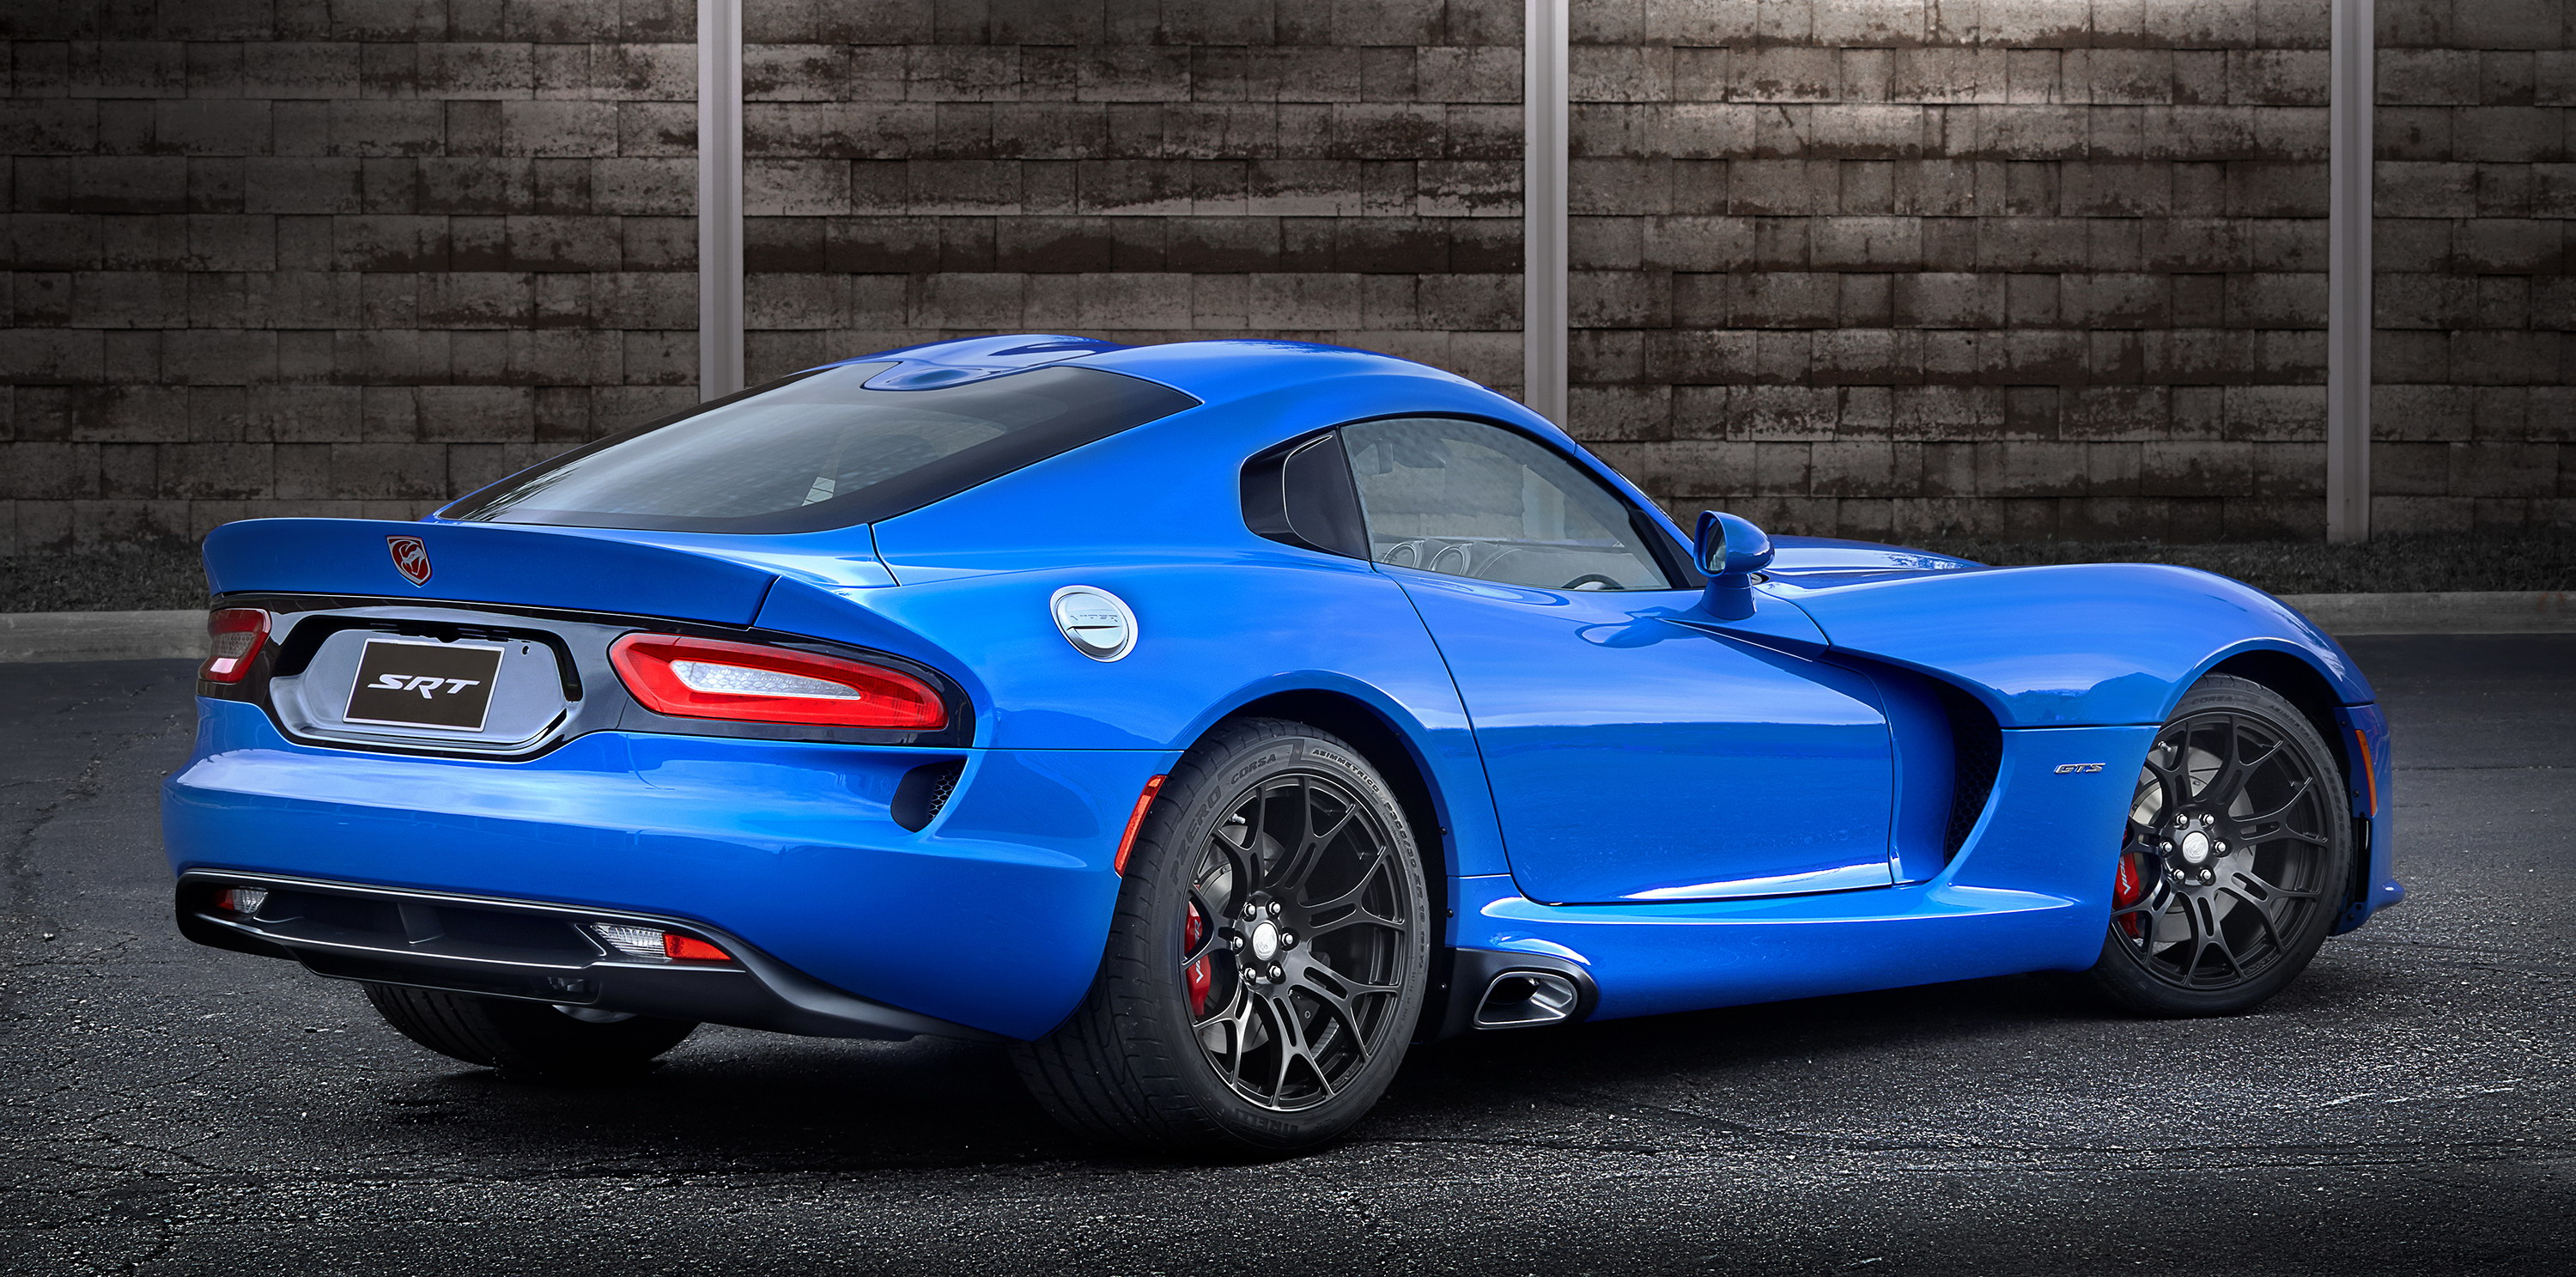 2015 dodge viper gts ceramic blue edition package review - top speed